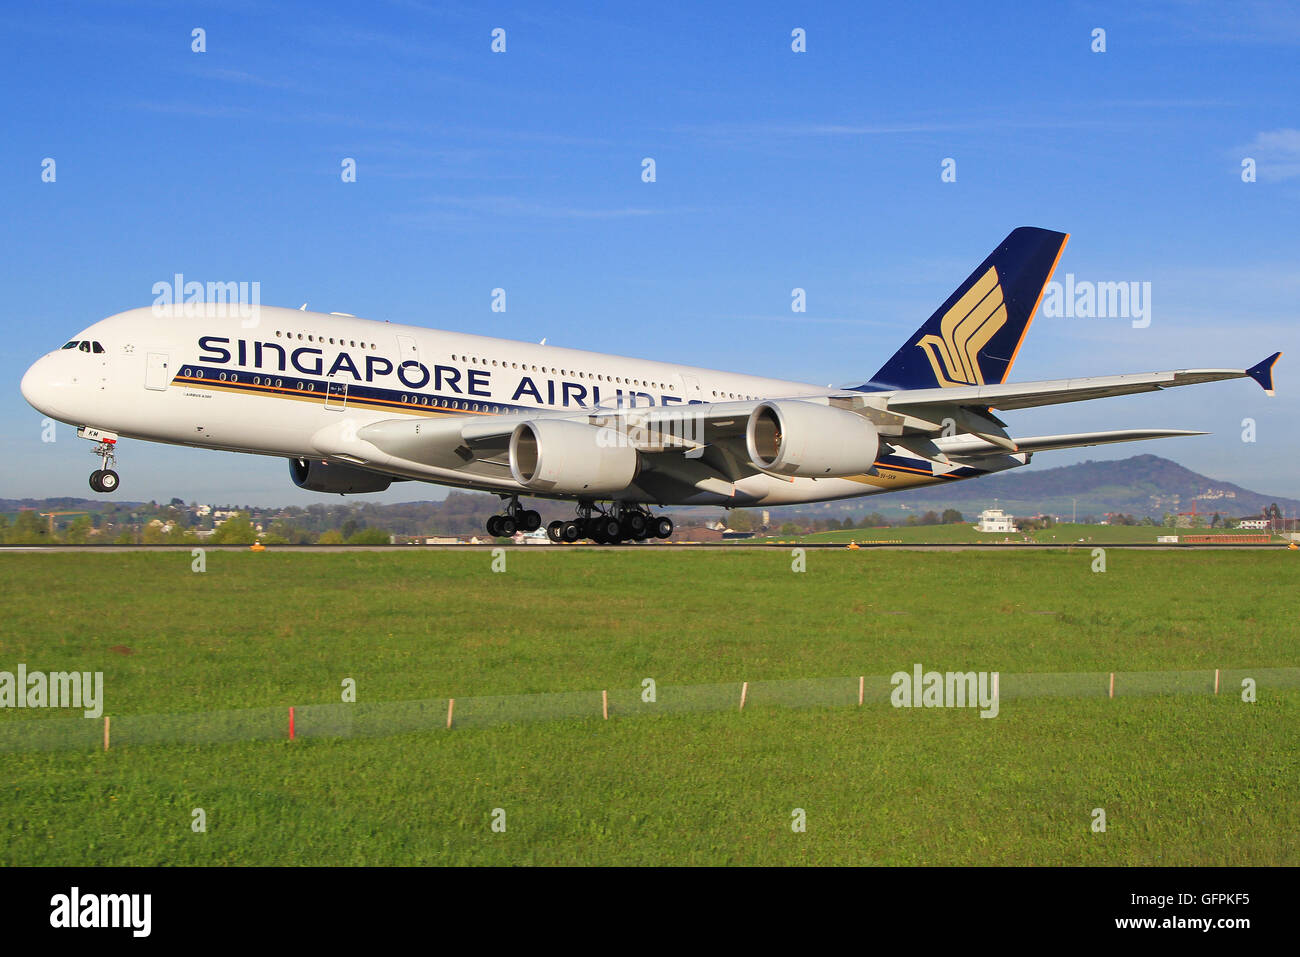 Zurich/Switzerland August 10, 2013: A380 from Singapore Airliners landing at Zürich Airport. - Stock Image